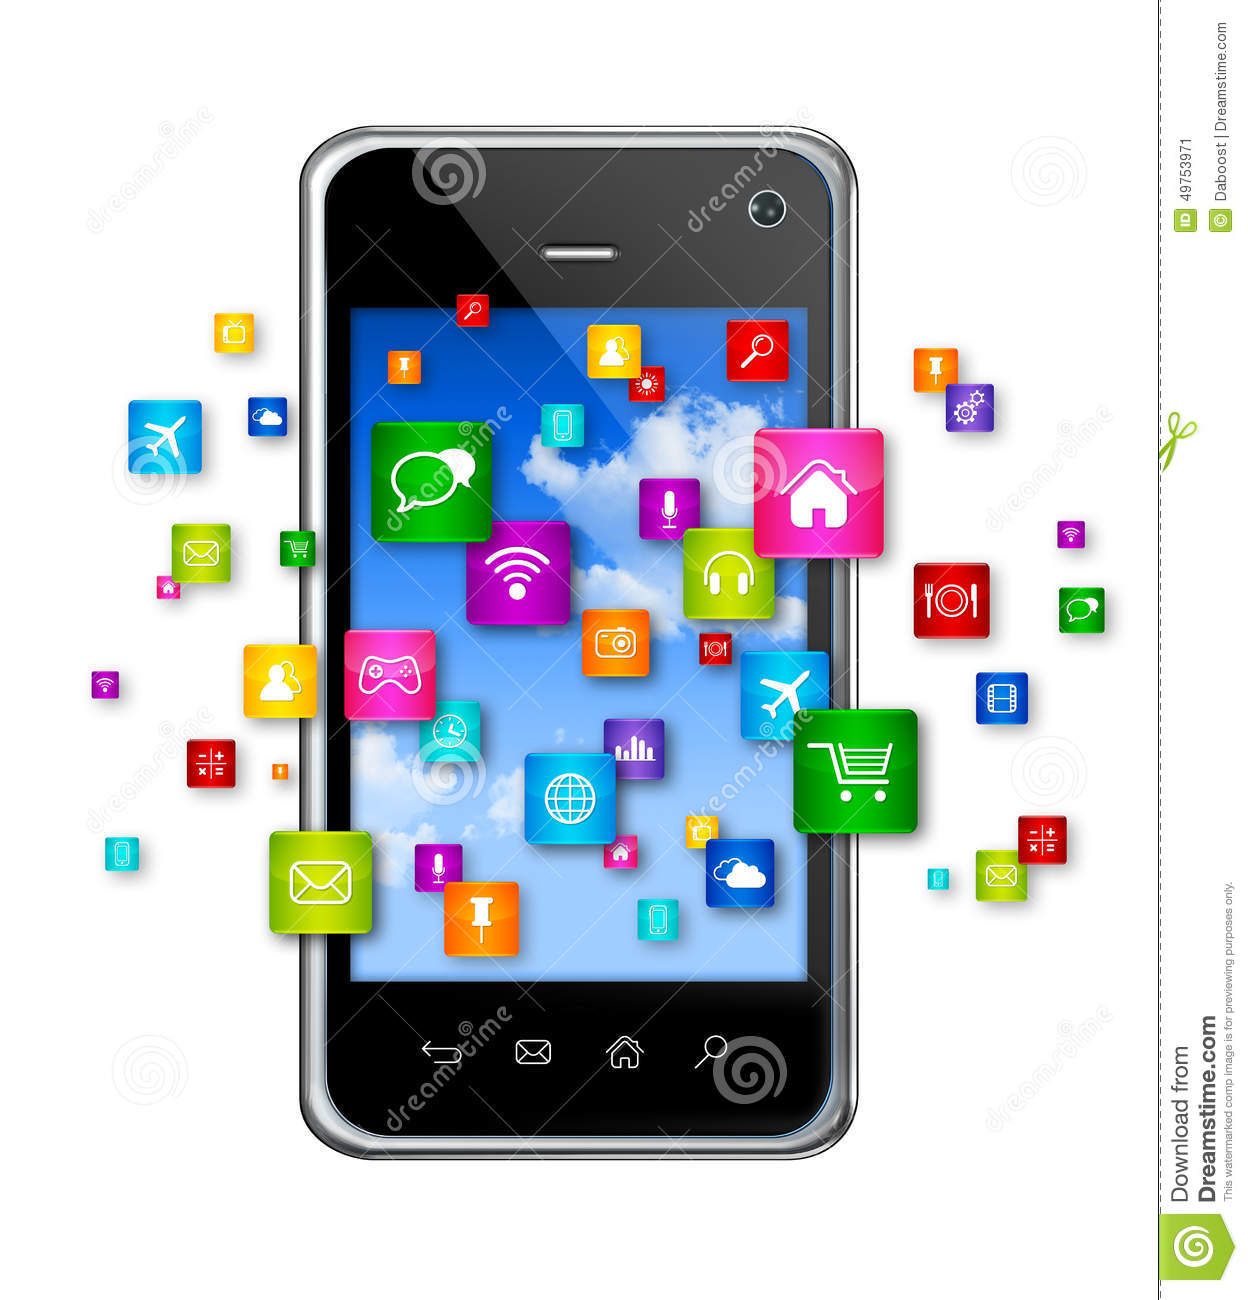 mobile-phone-flying-apps-icons-d-isolated-white-49753971.jpg